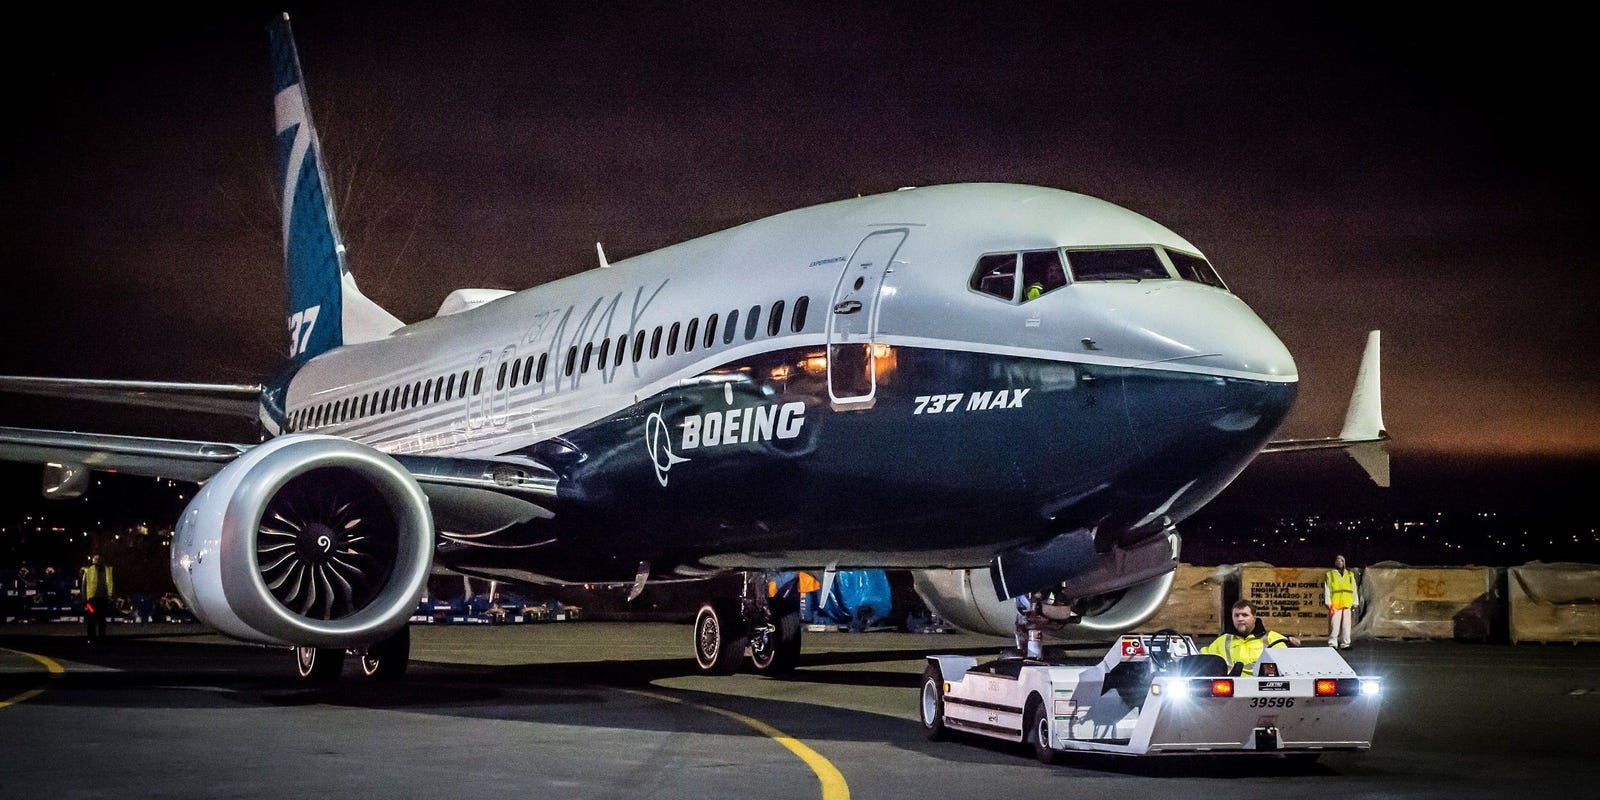 House blames Boeing, FAA for mistakes that led to crashes